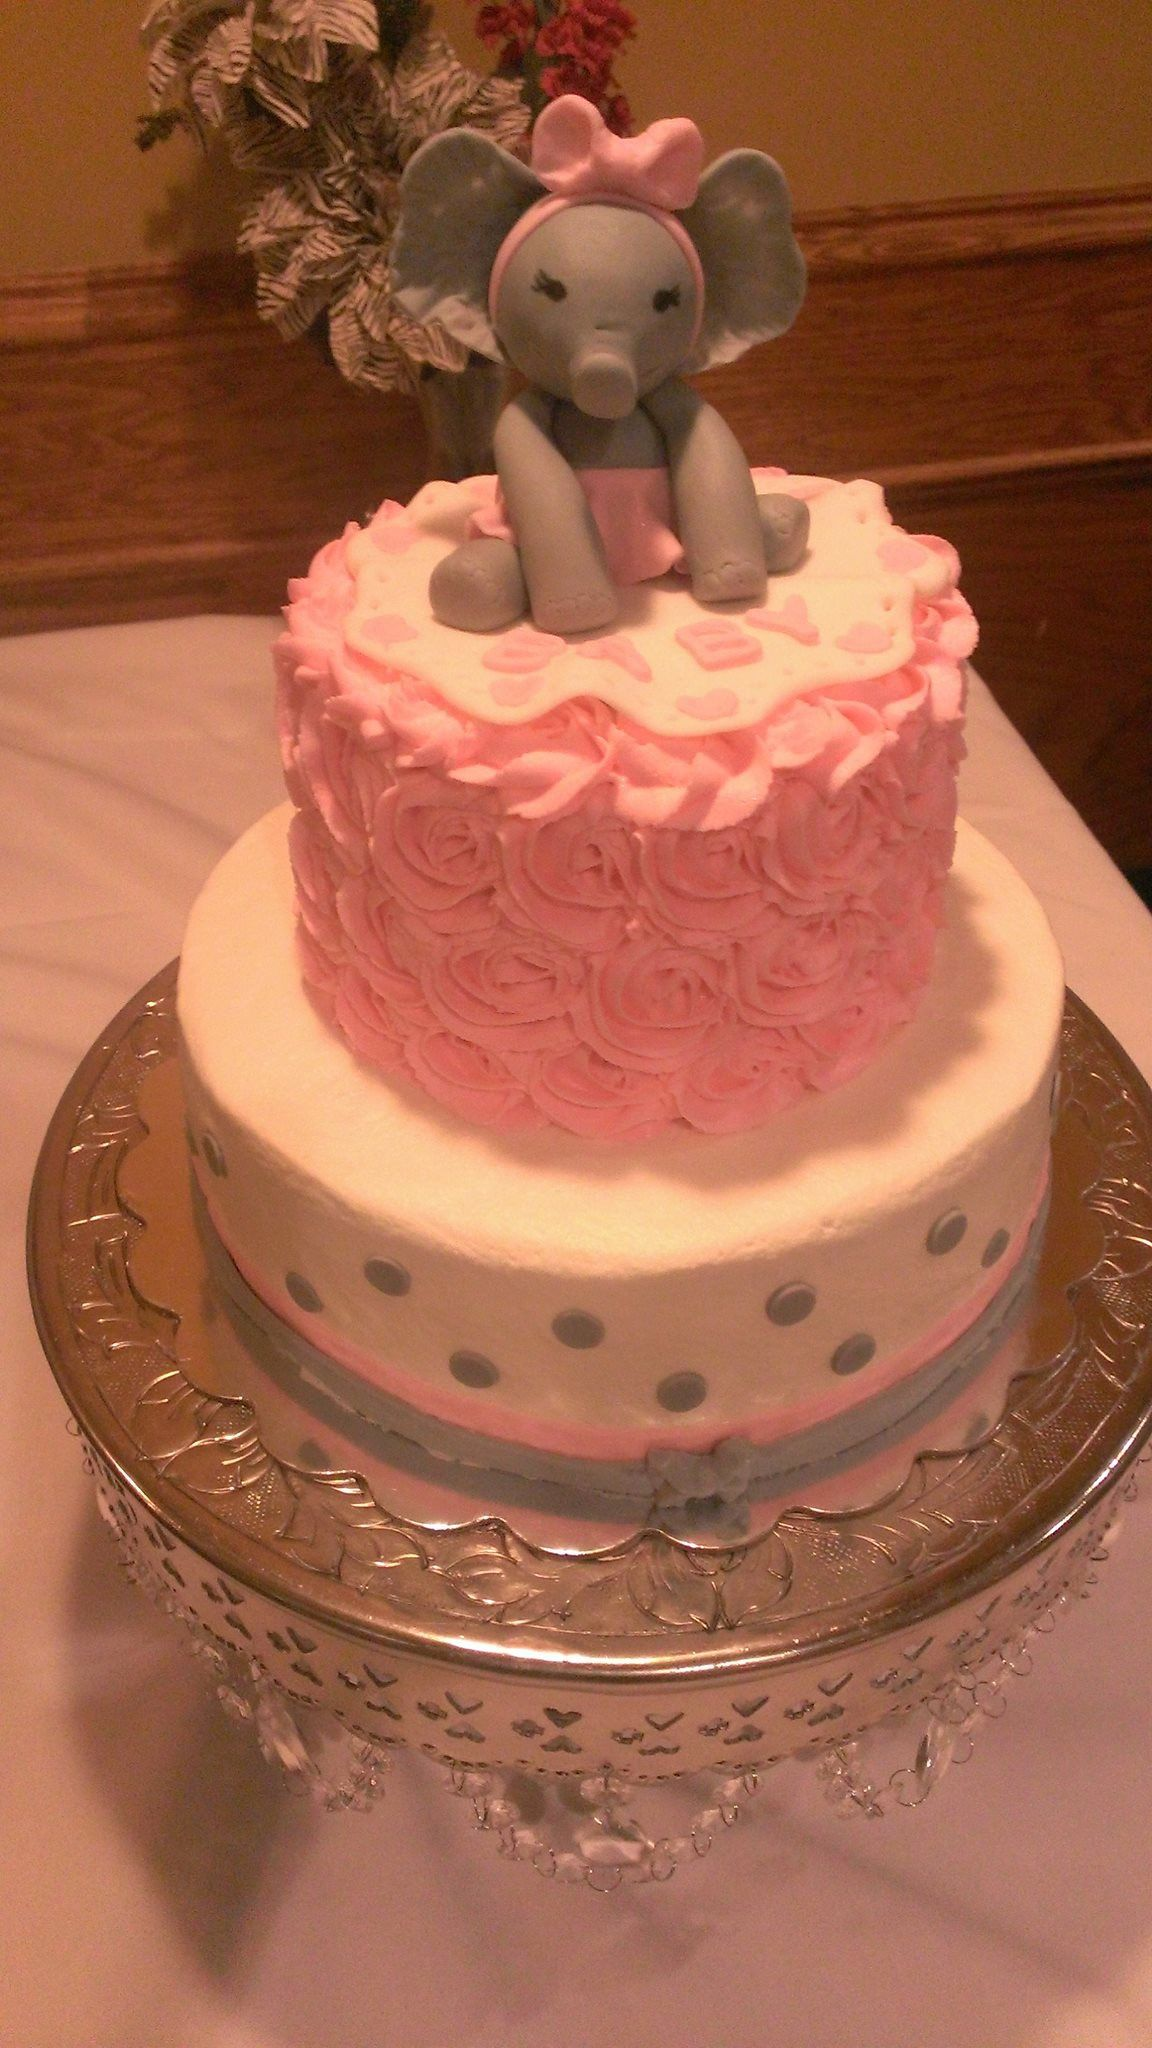 Buttercream Baby Shower Cake I Made Pinkgrey With Baby Girl